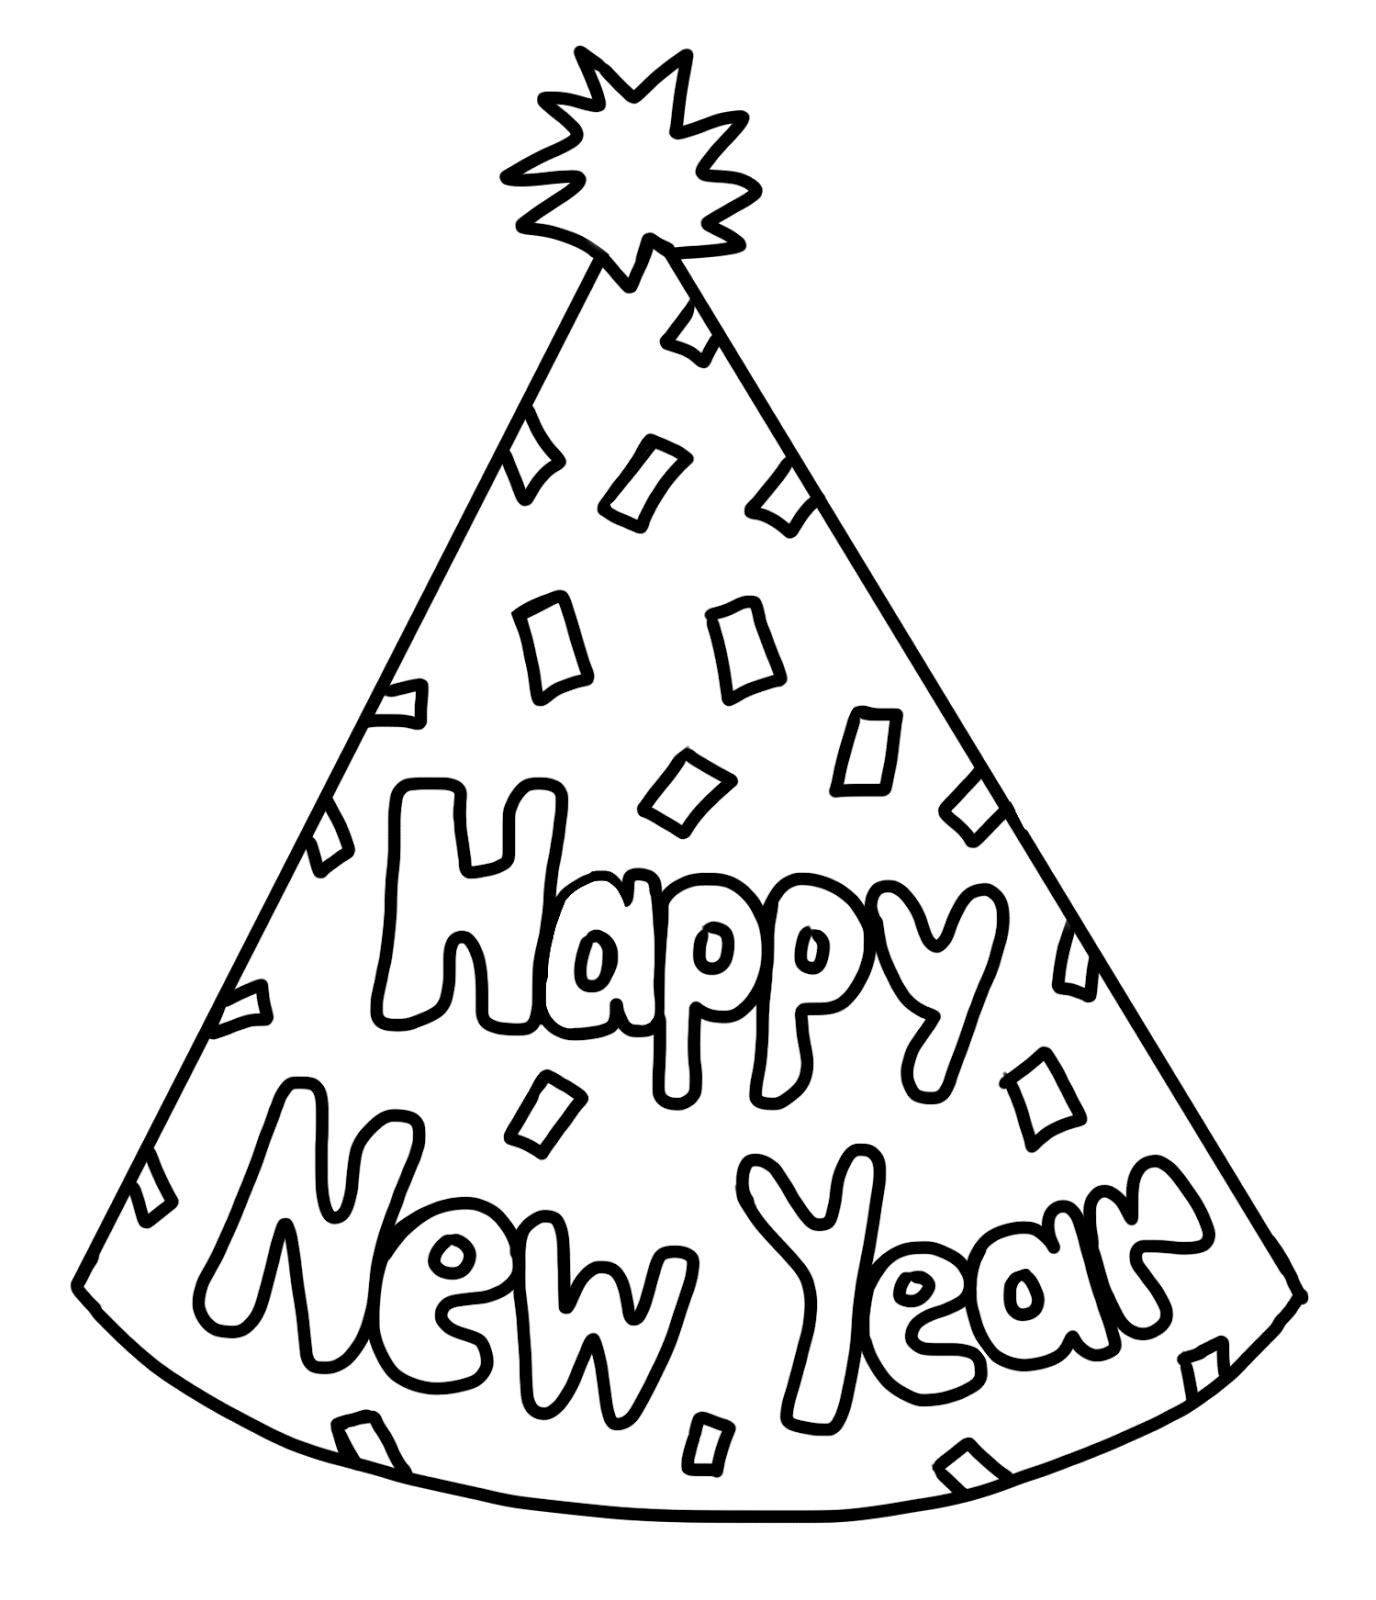 C & C Teach First: Happy New Year Party Hat FREEBIE